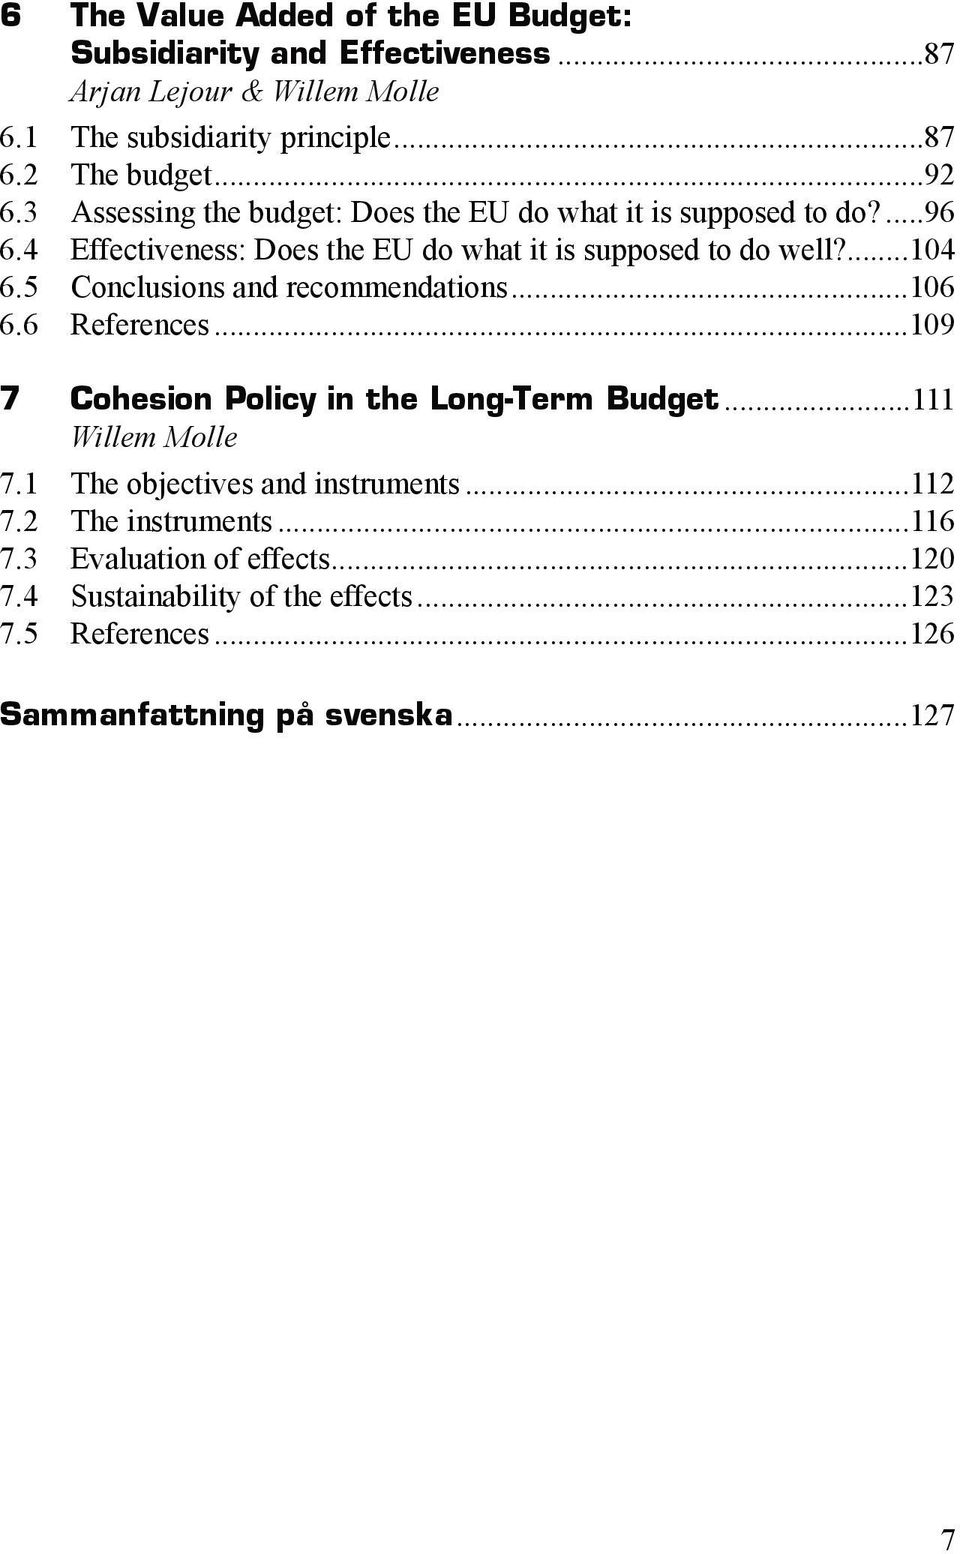 5 Conclusions and recommendations...106 6.6 References...109 7 Cohesion Policy in the Long-Term Budget...111 Willem Molle 7.